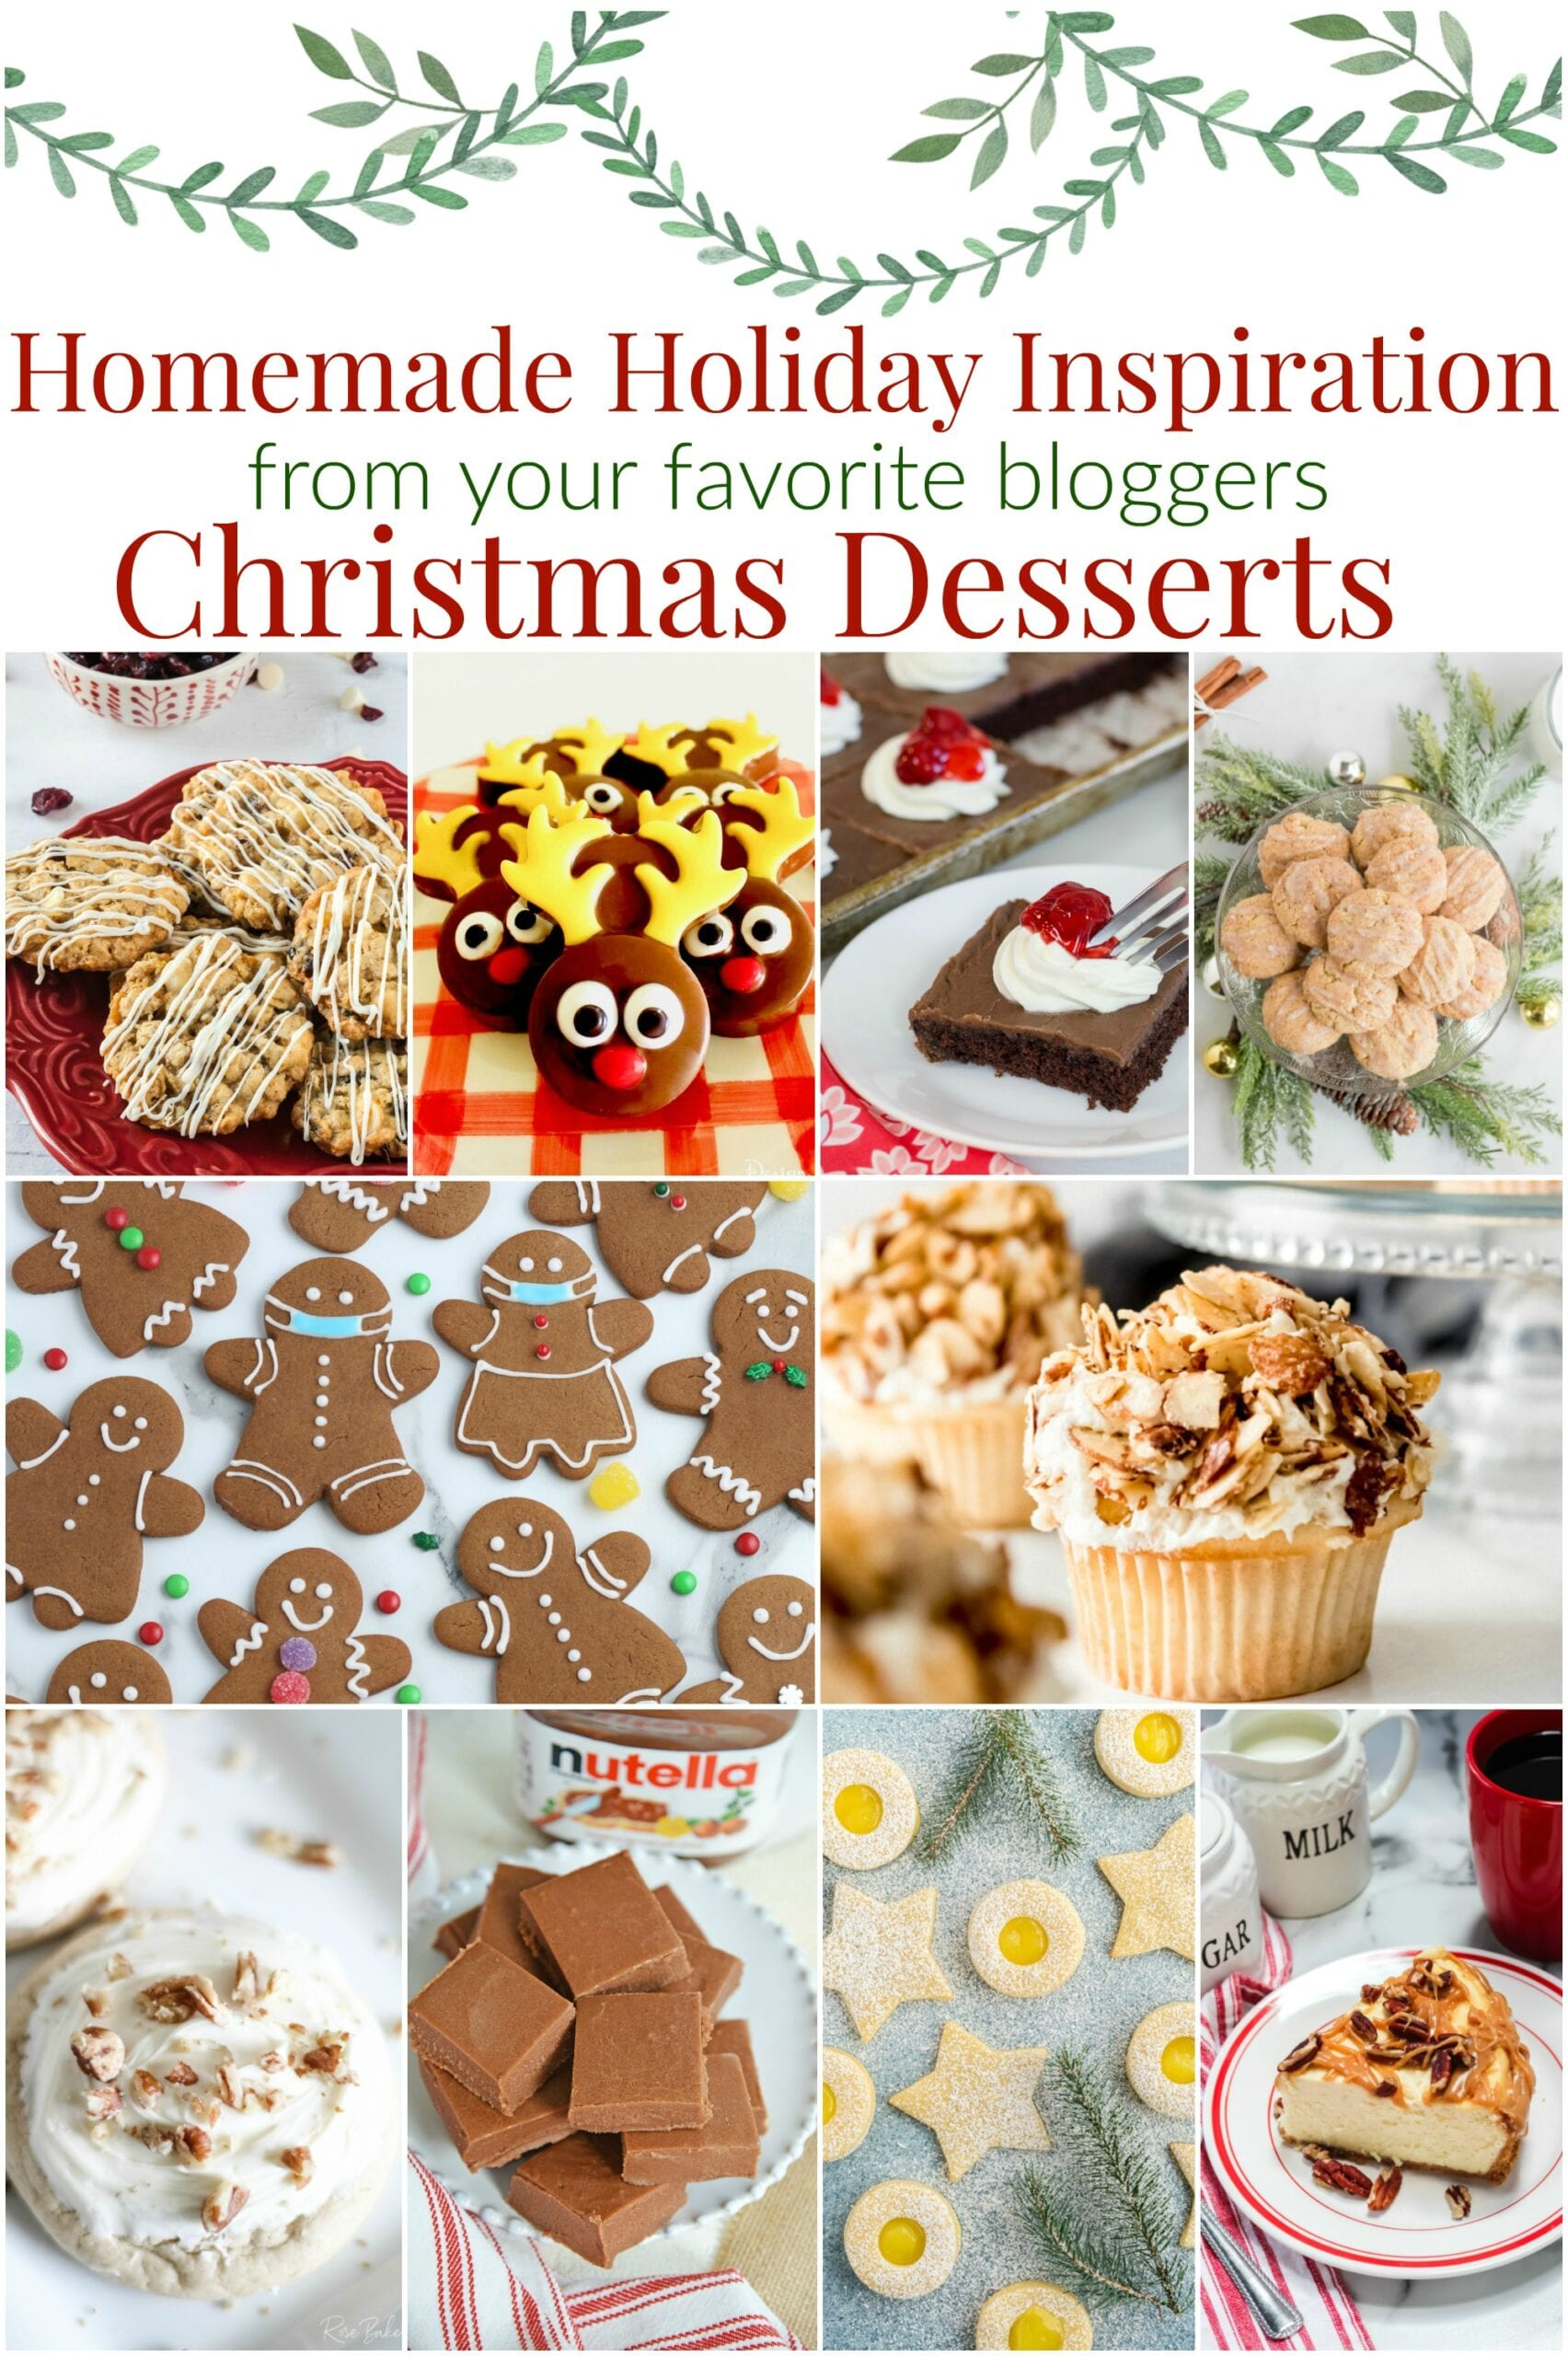 Holiday Desserts Collage with text overlay.